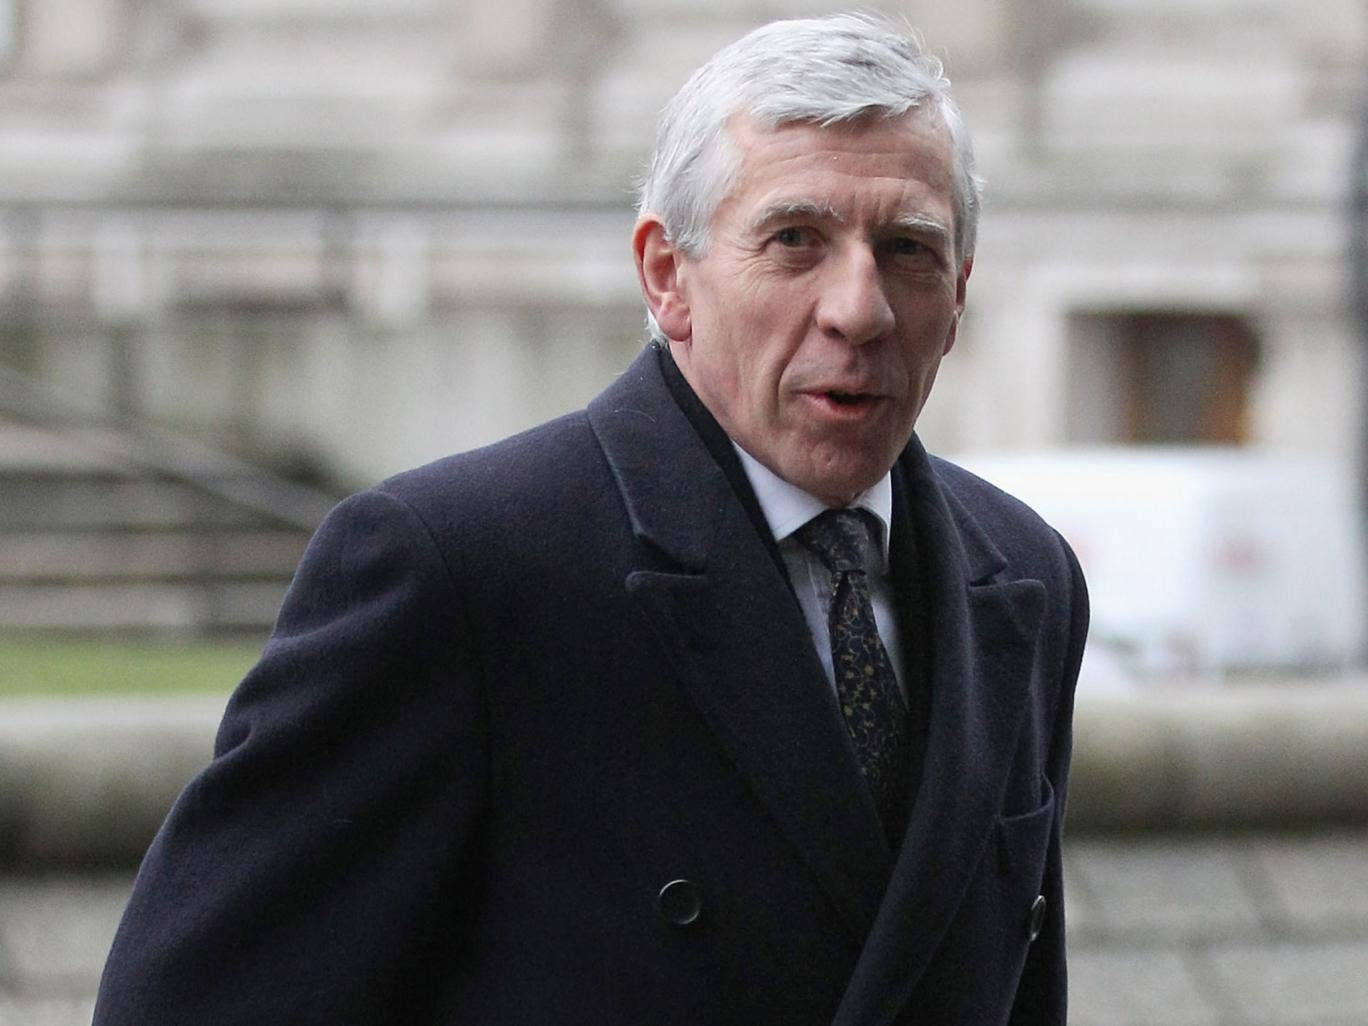 Jack Straw will leave the Commons in 2015